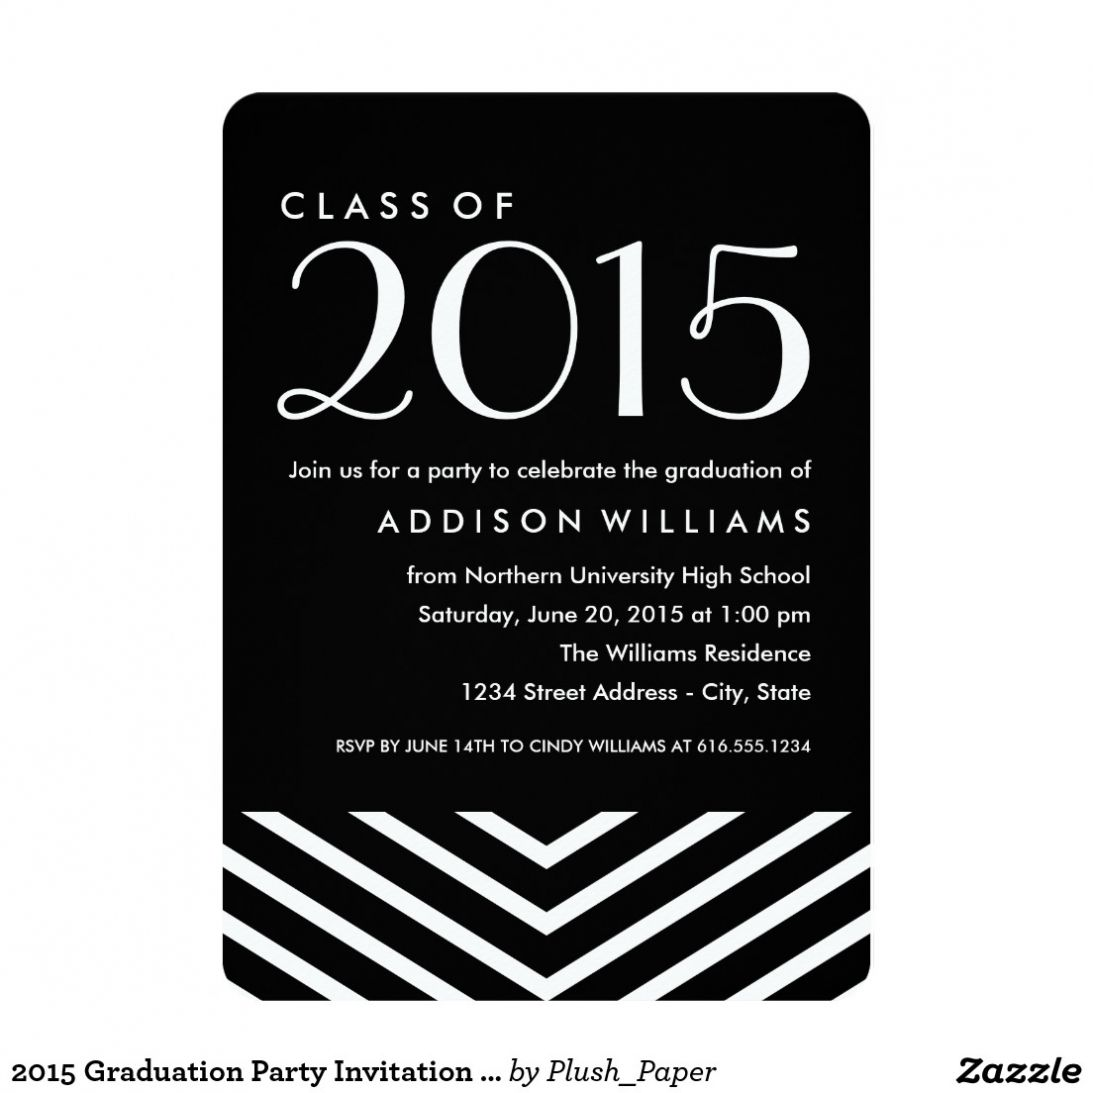 Graduation Party Invitations 2015 to give you inspiration in making